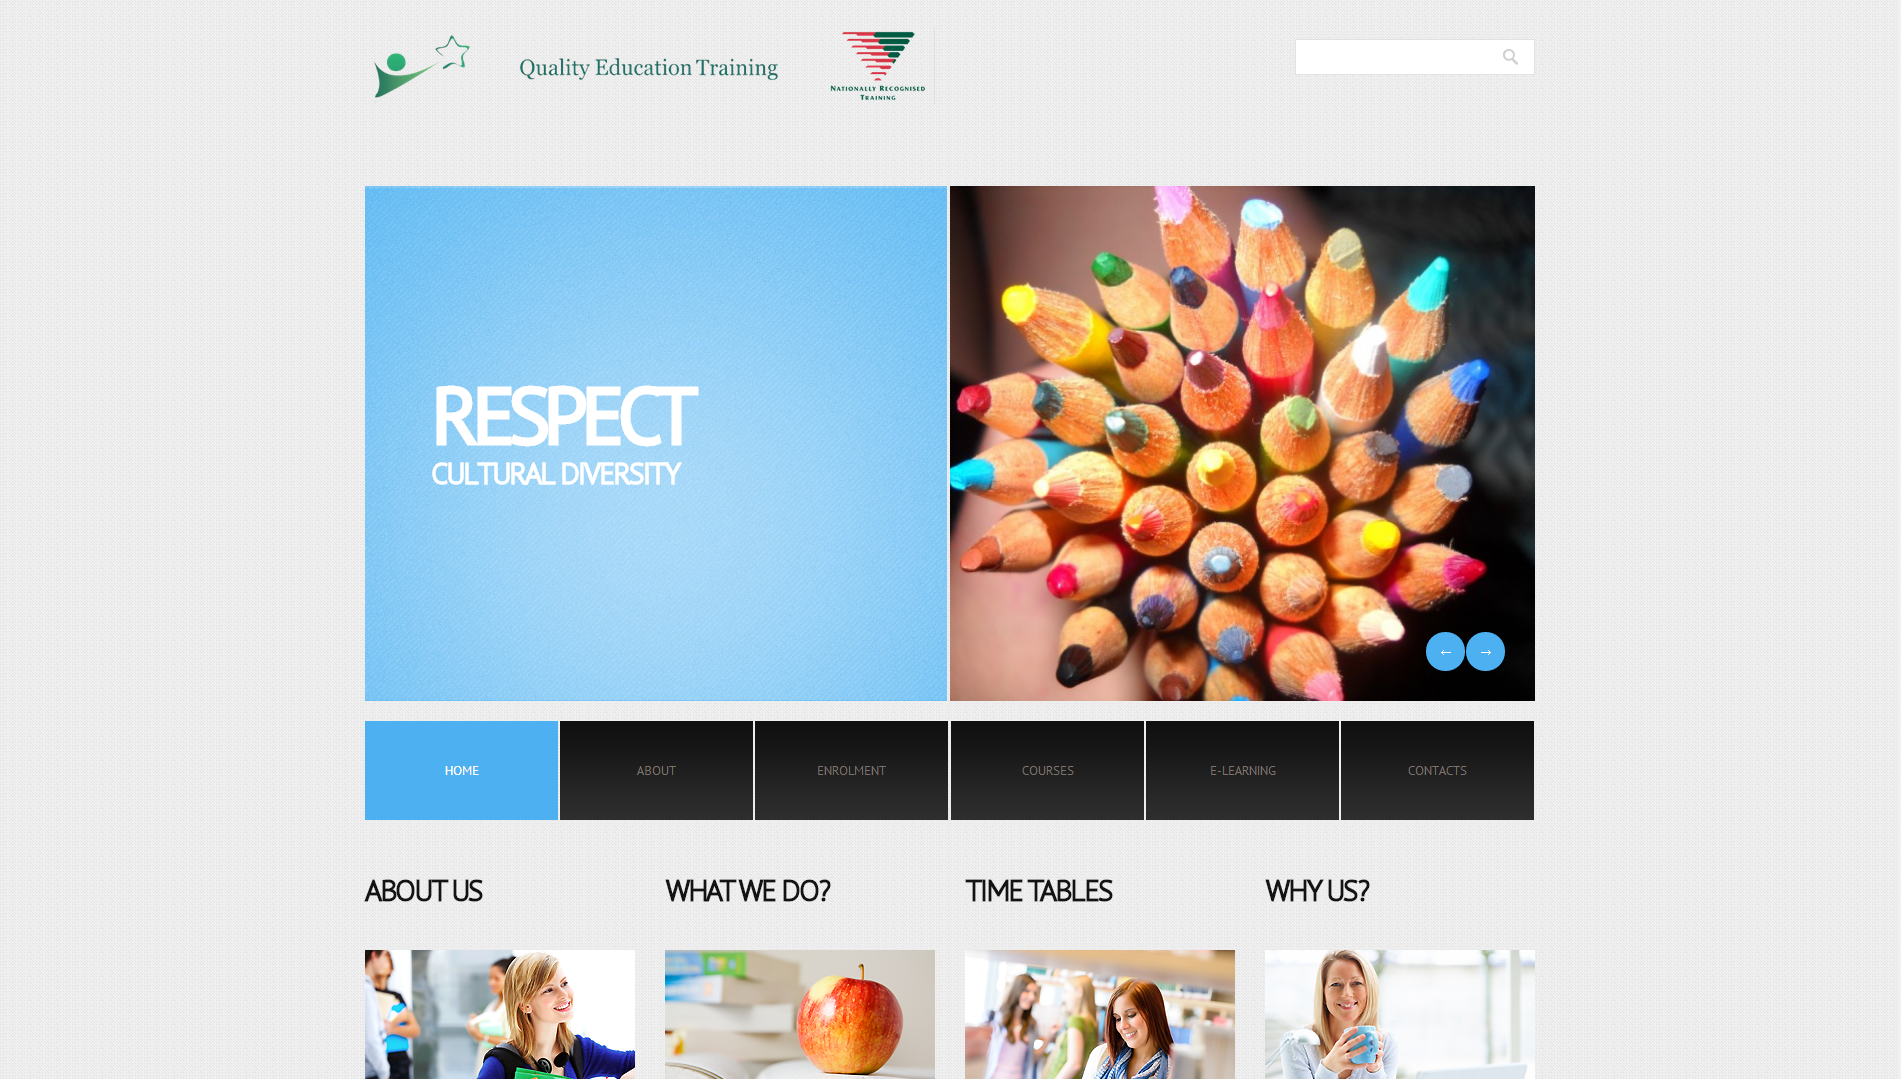 Quality Education Training Home Page. Web2day Design